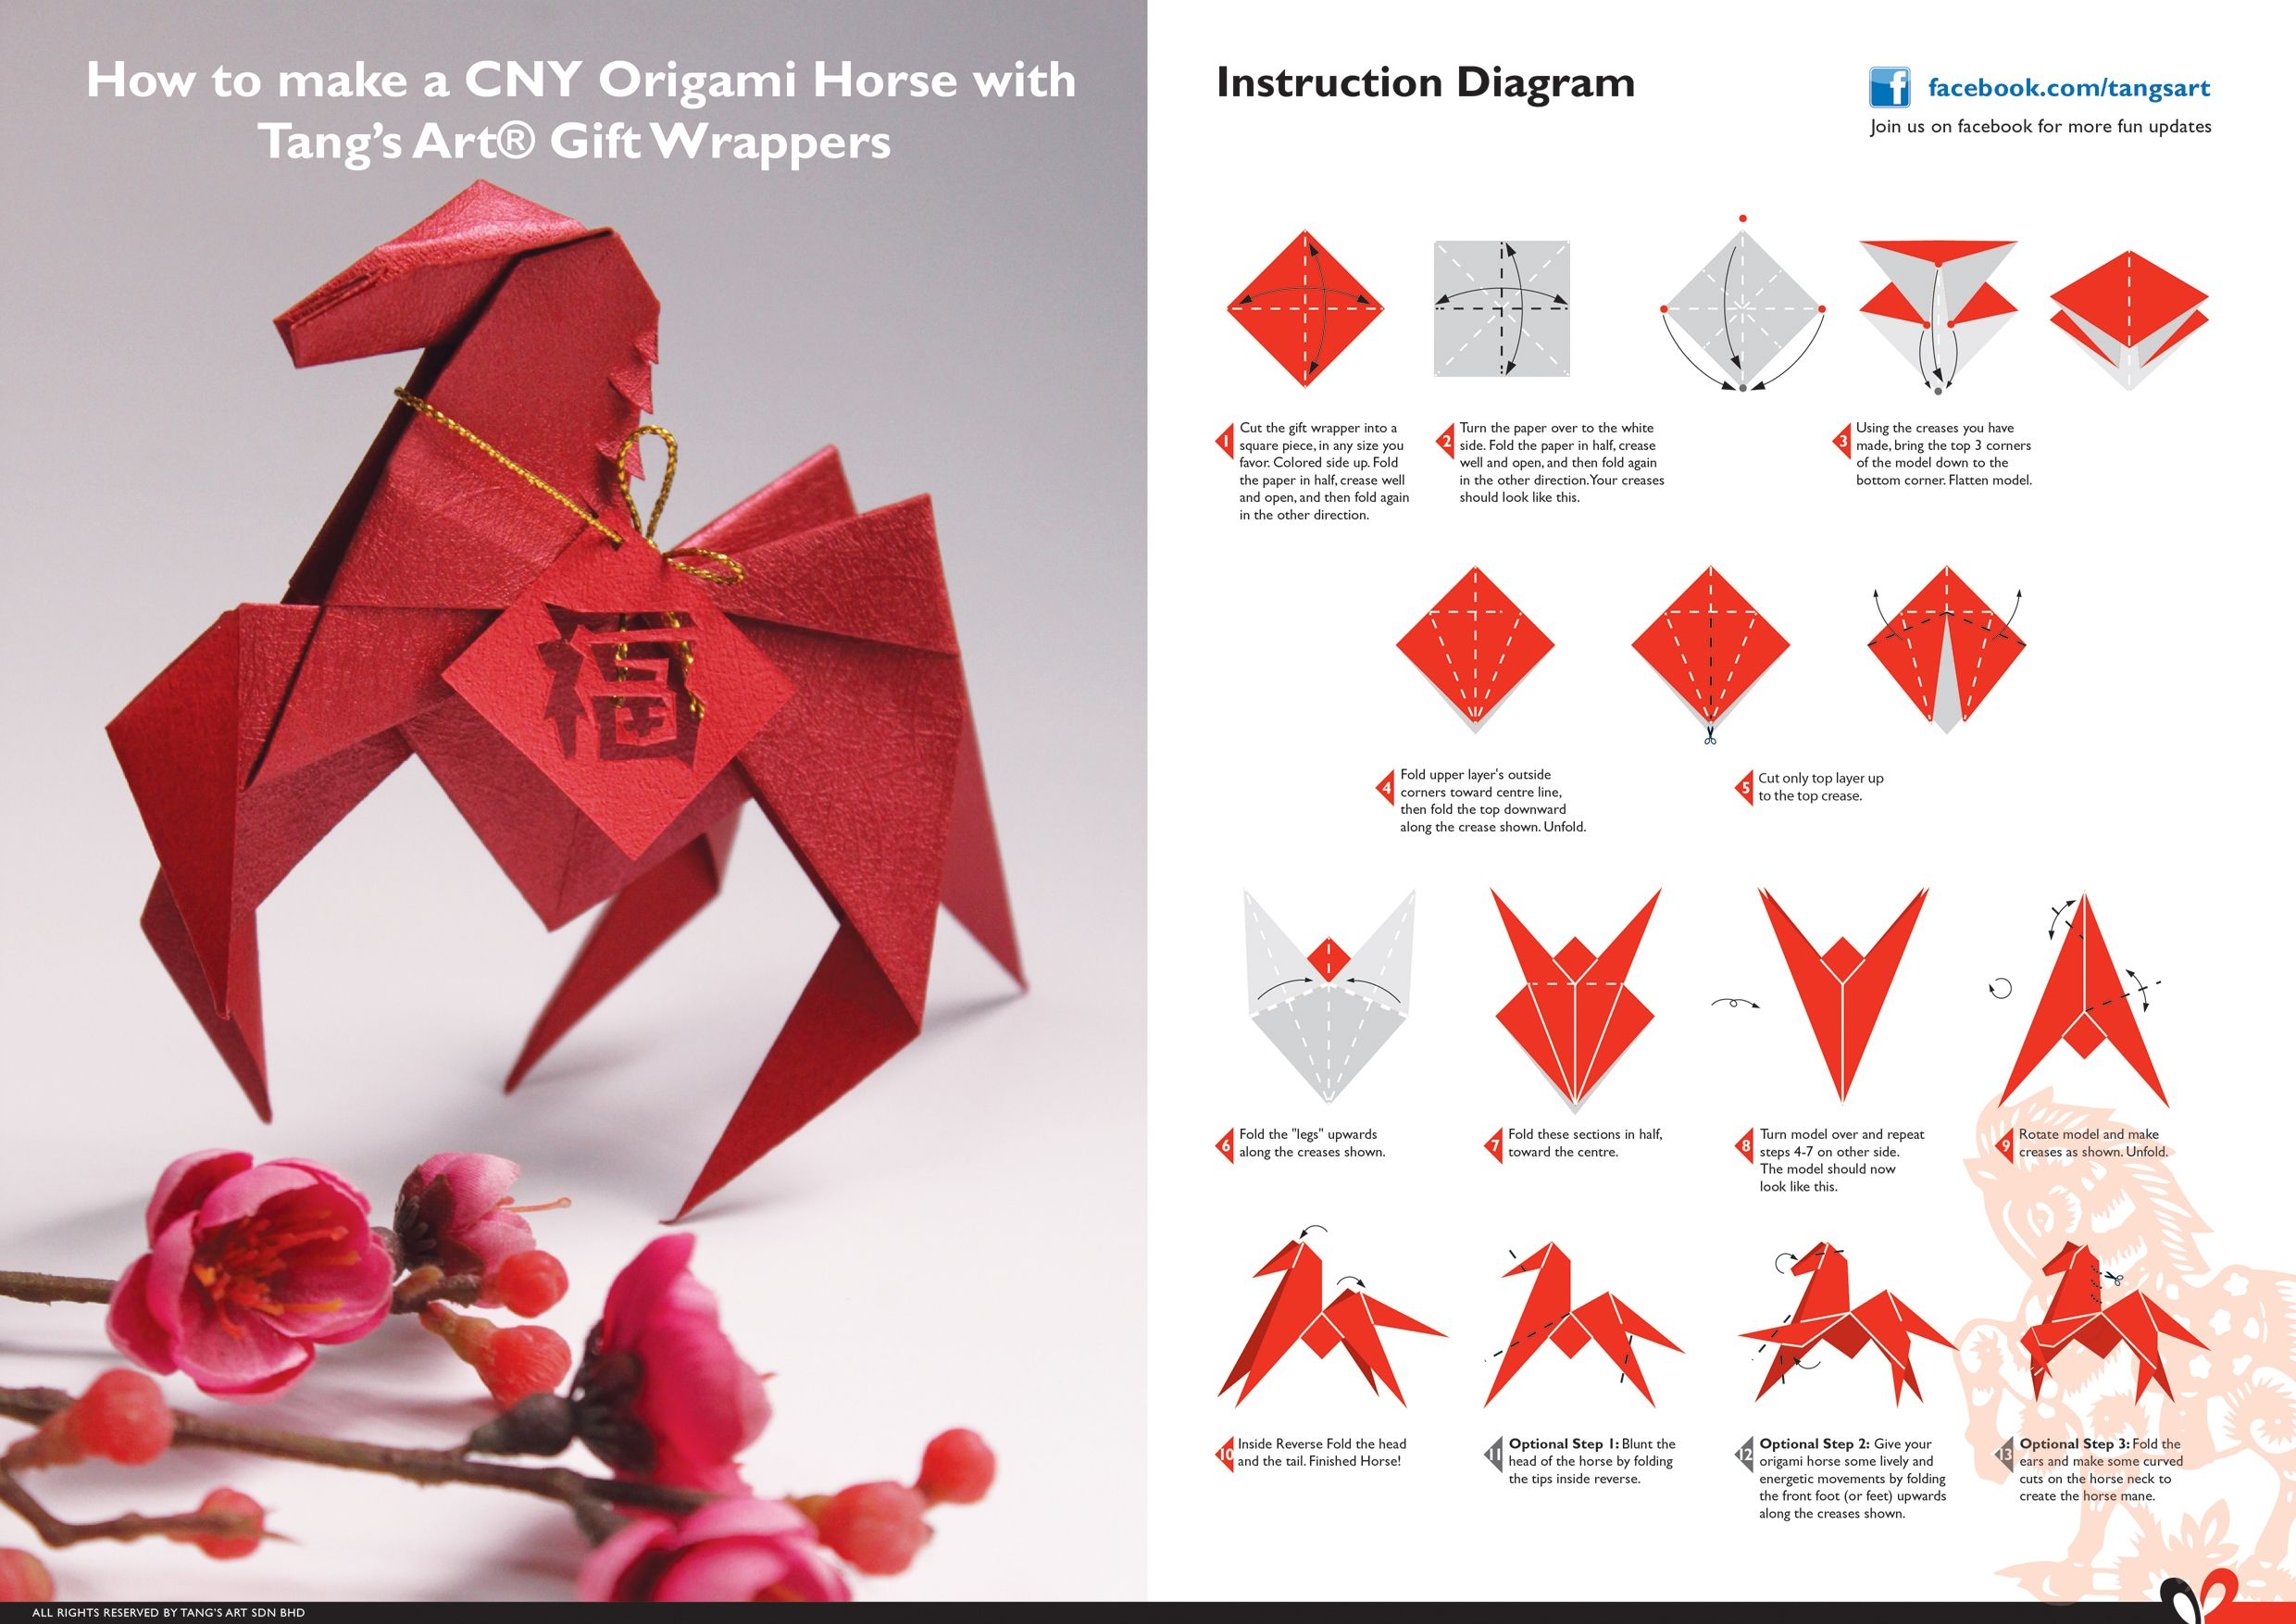 Pin By Ming Tee On Origami Horse Diagrams Folding Diagram 1 Of 3 Scottish Terrier Dog Money Useful Paper Quilling Papercraft